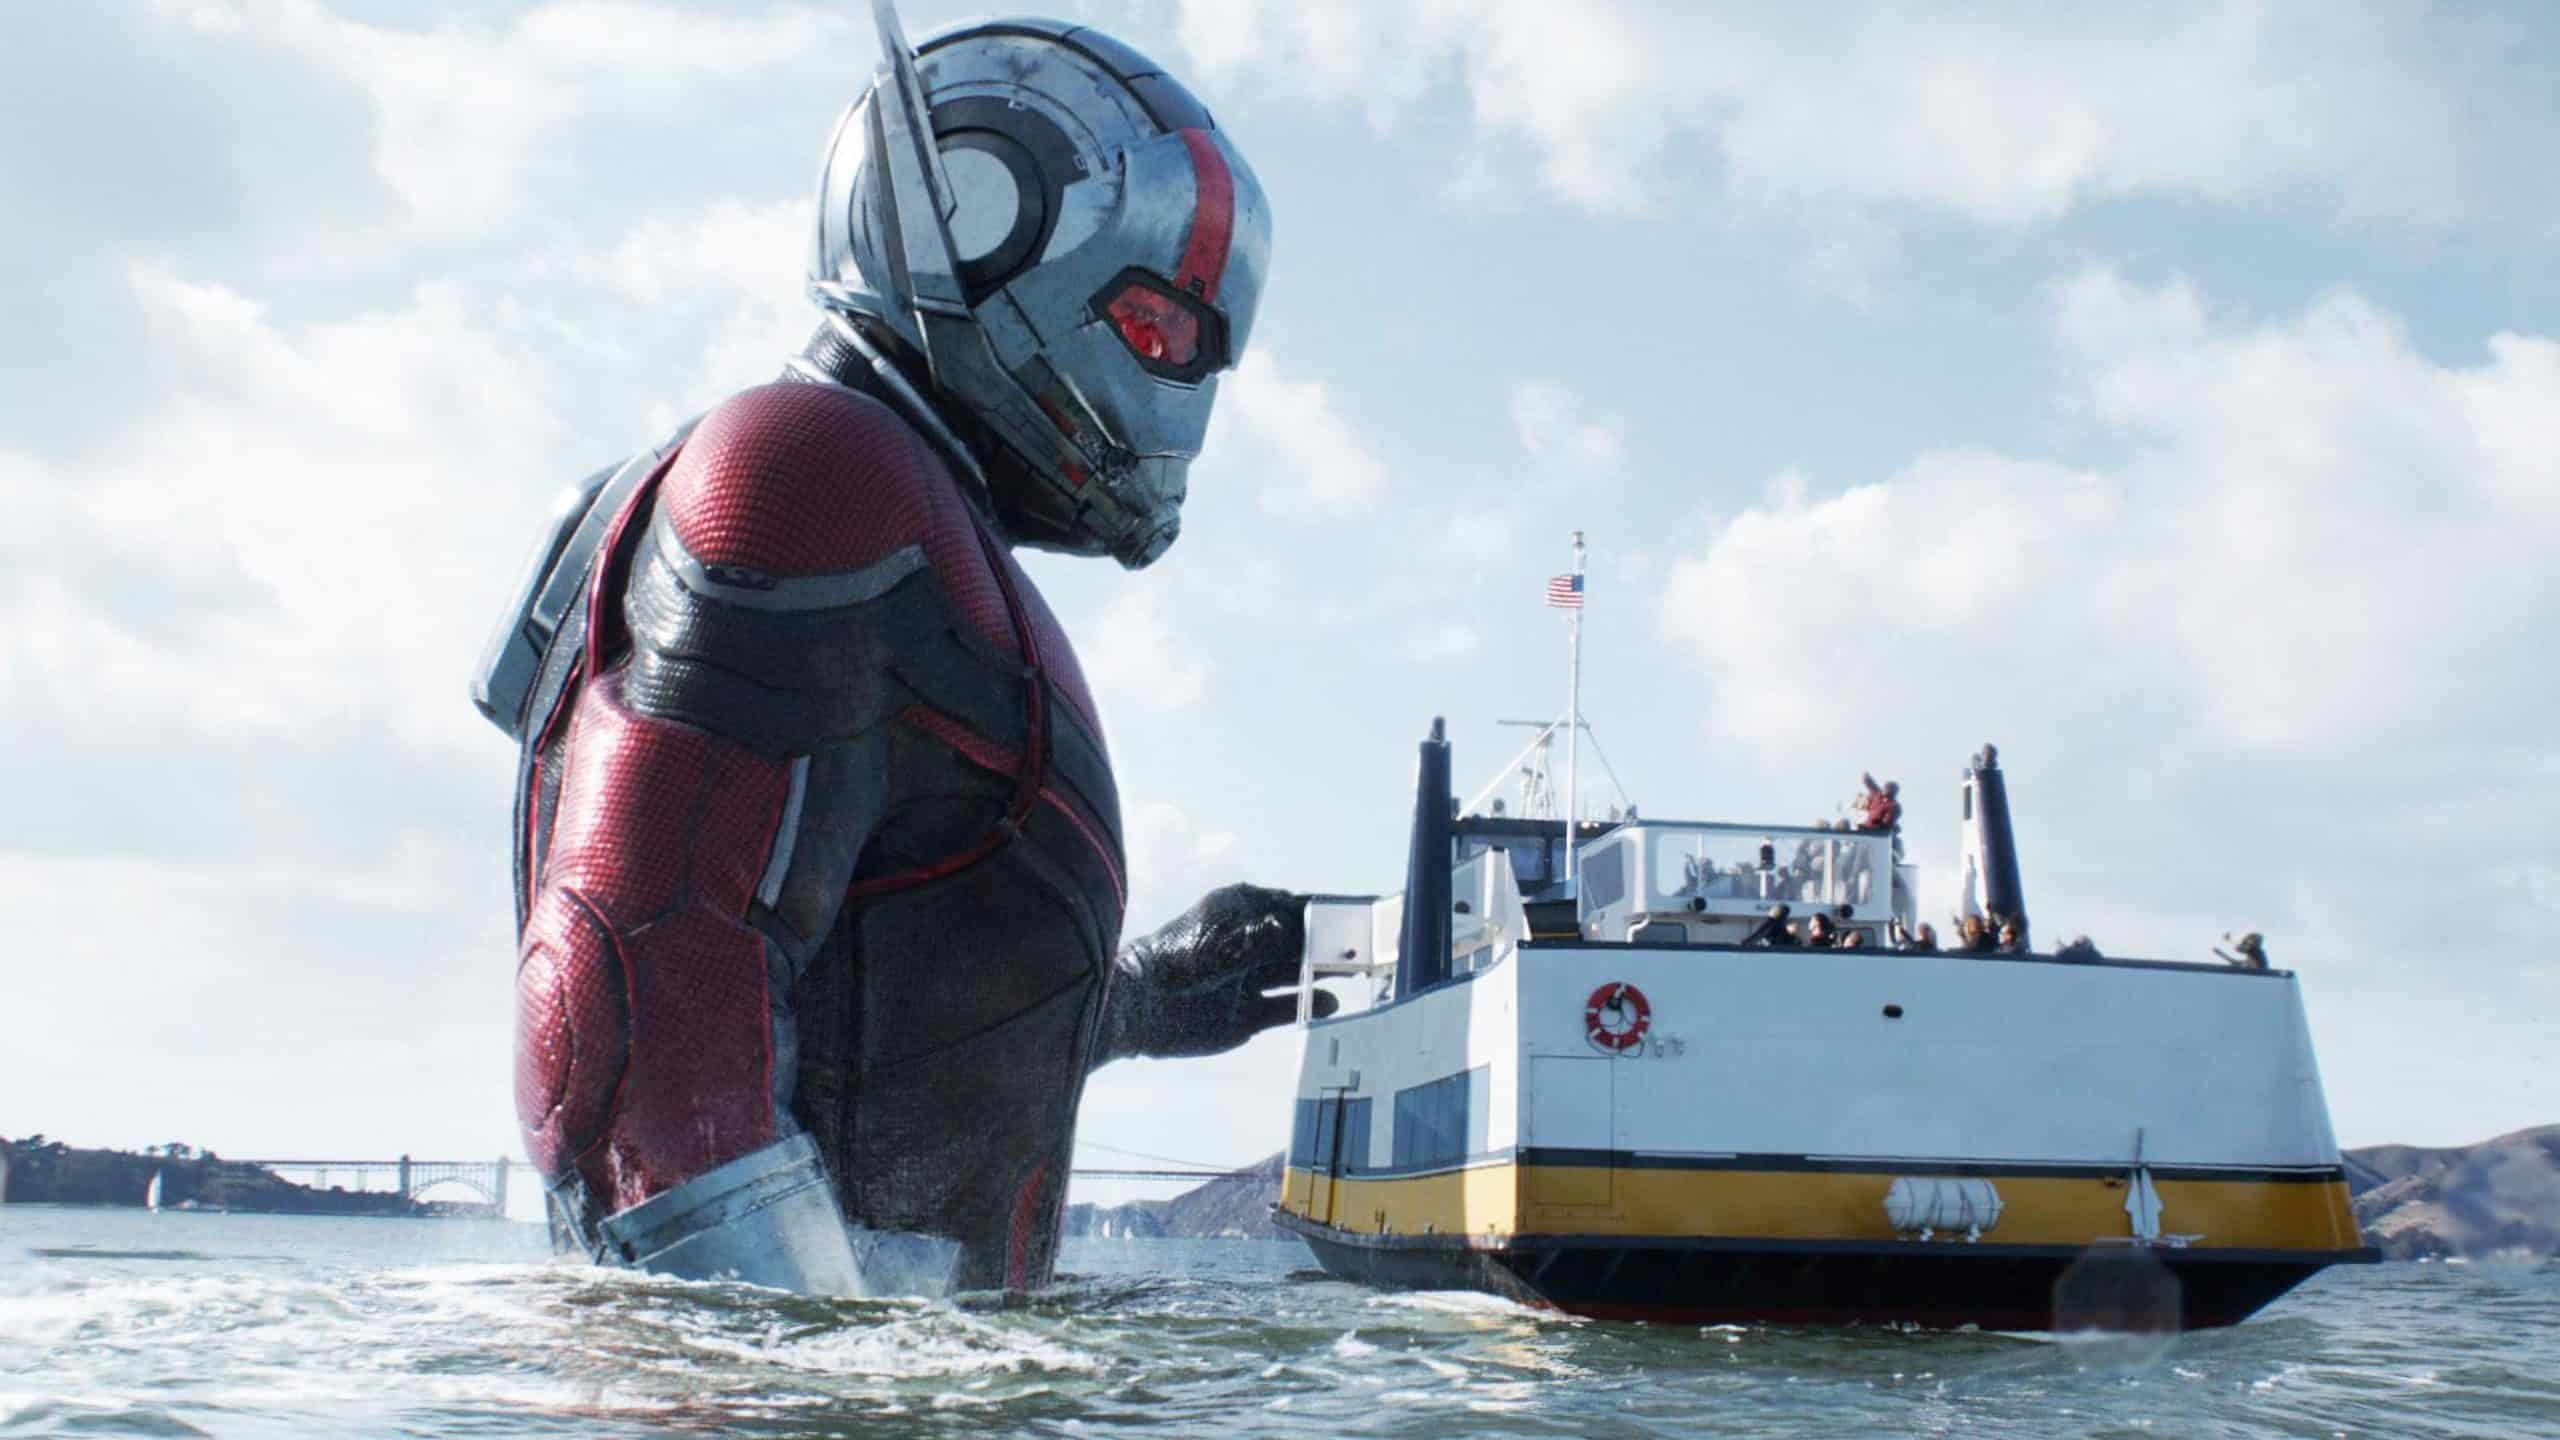 fan campaign for Ant-Man 3